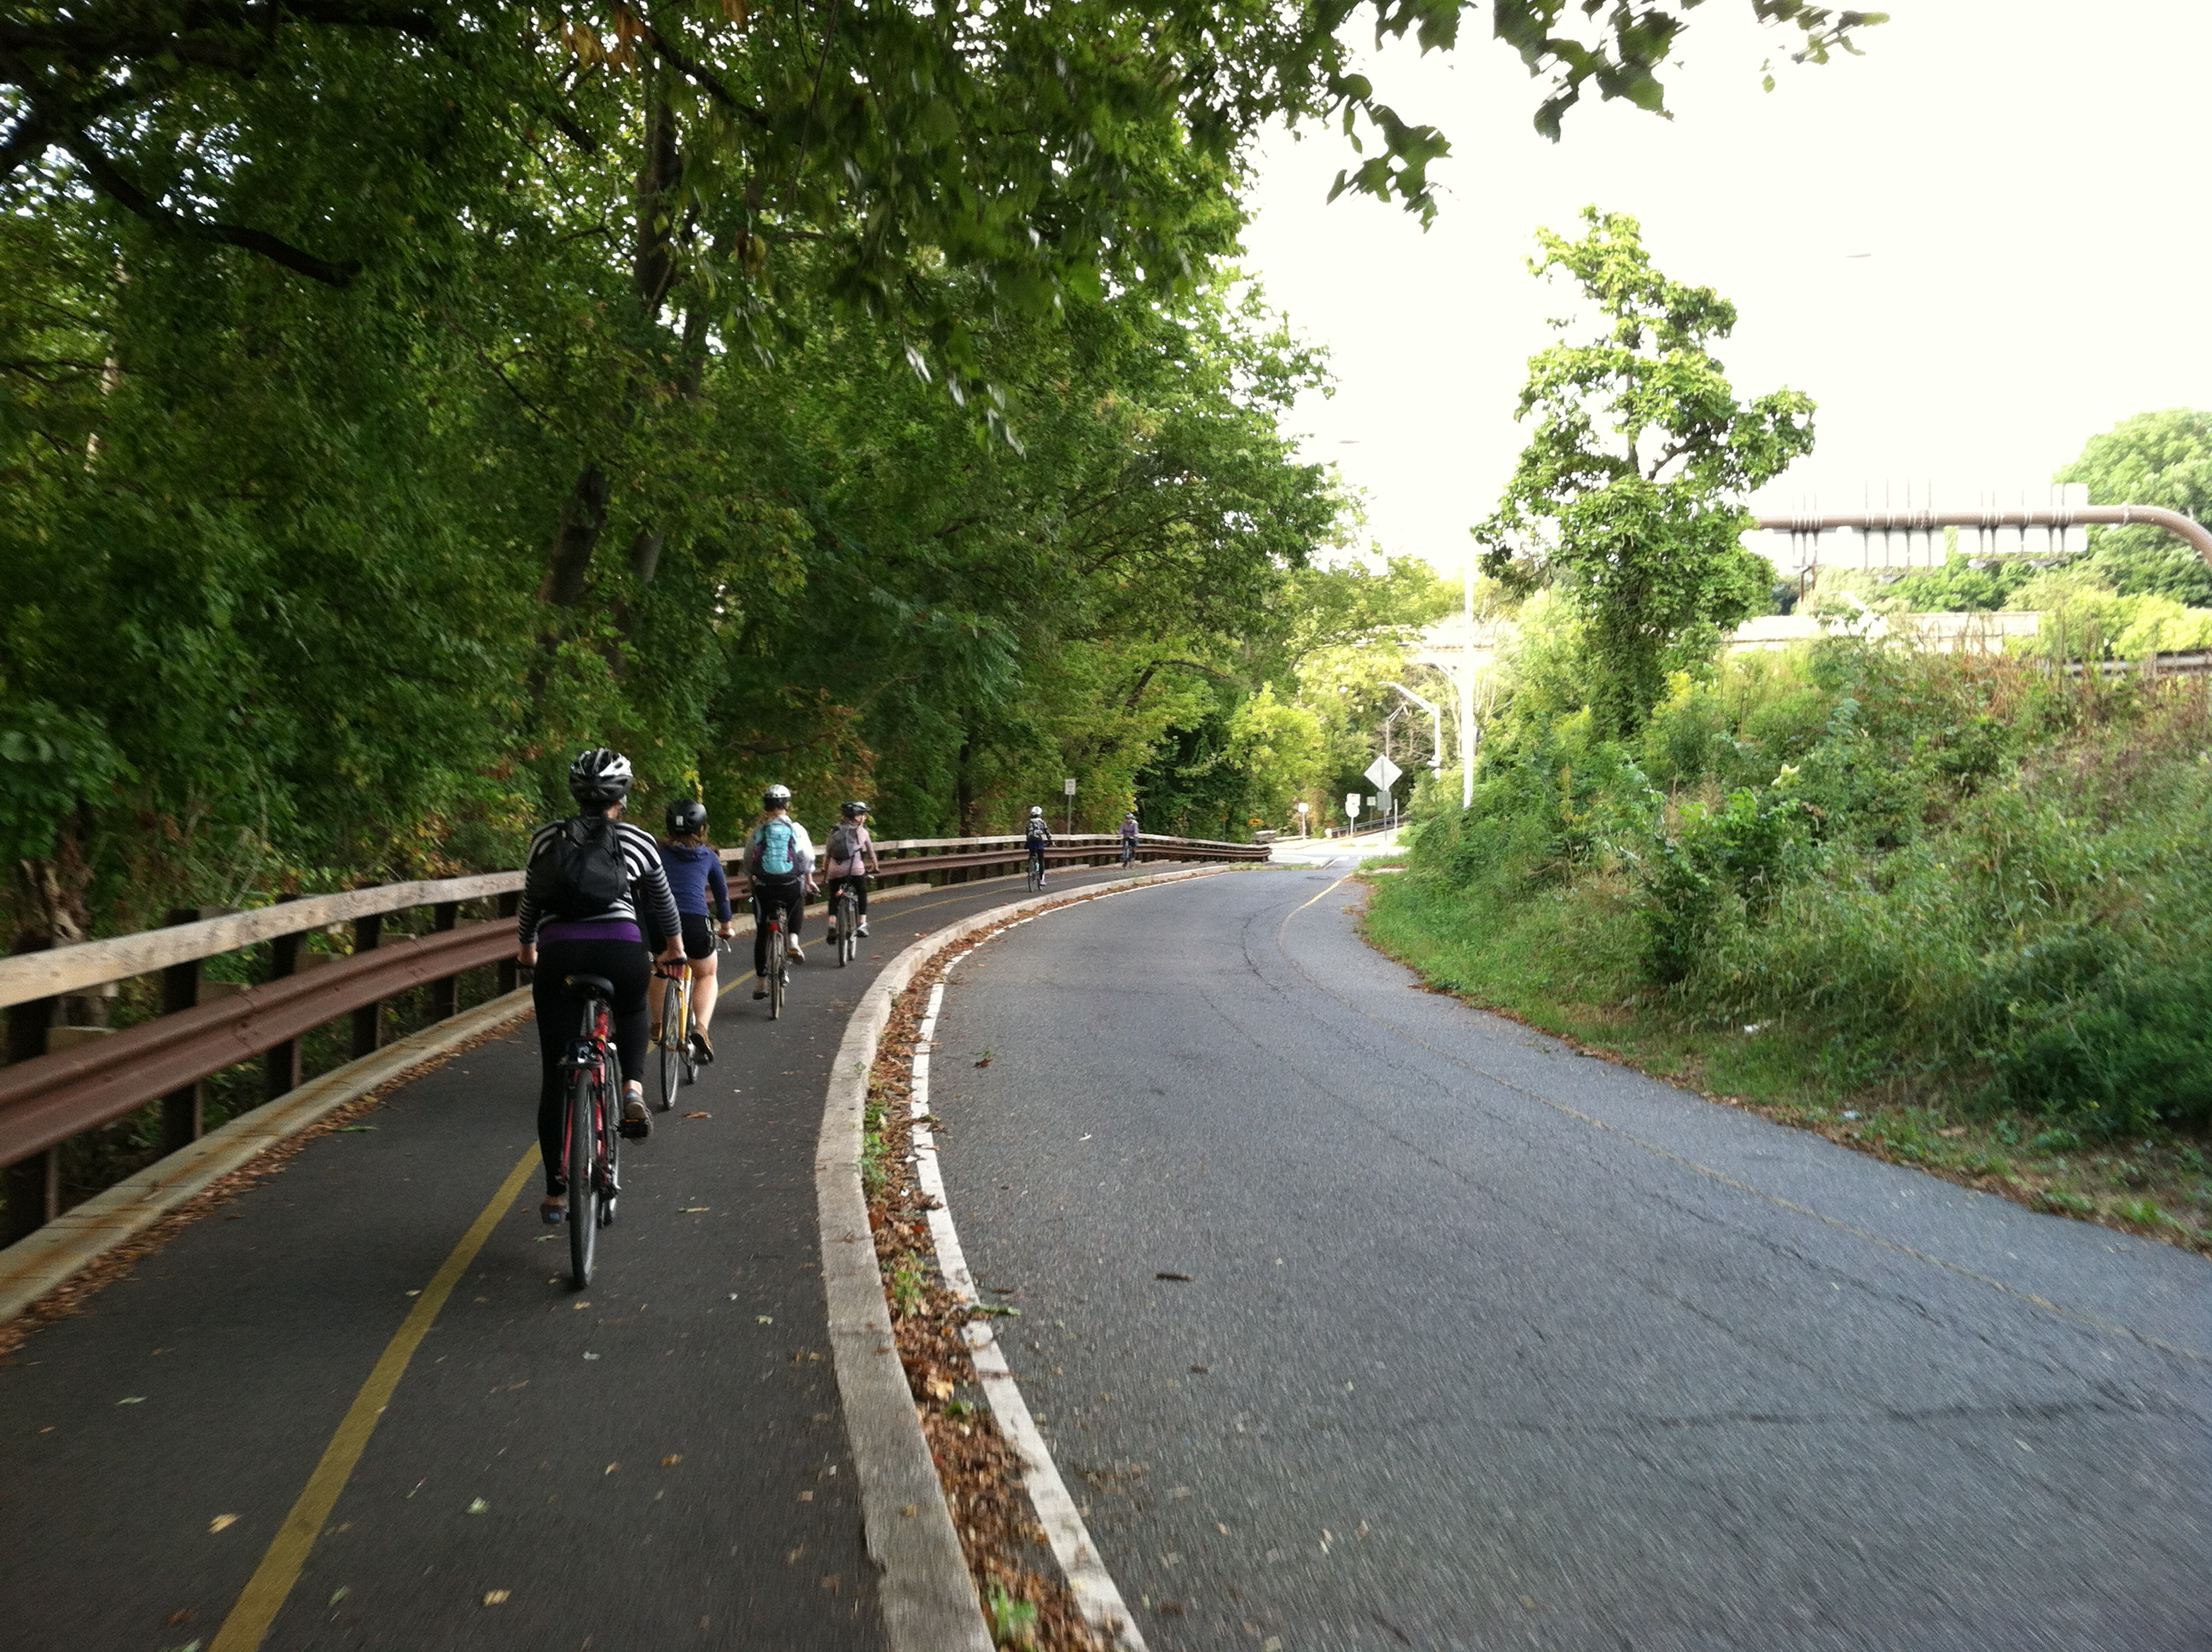 Philadelphia has been installing bike lanes for over a decade. They're a big draw for its young residents.